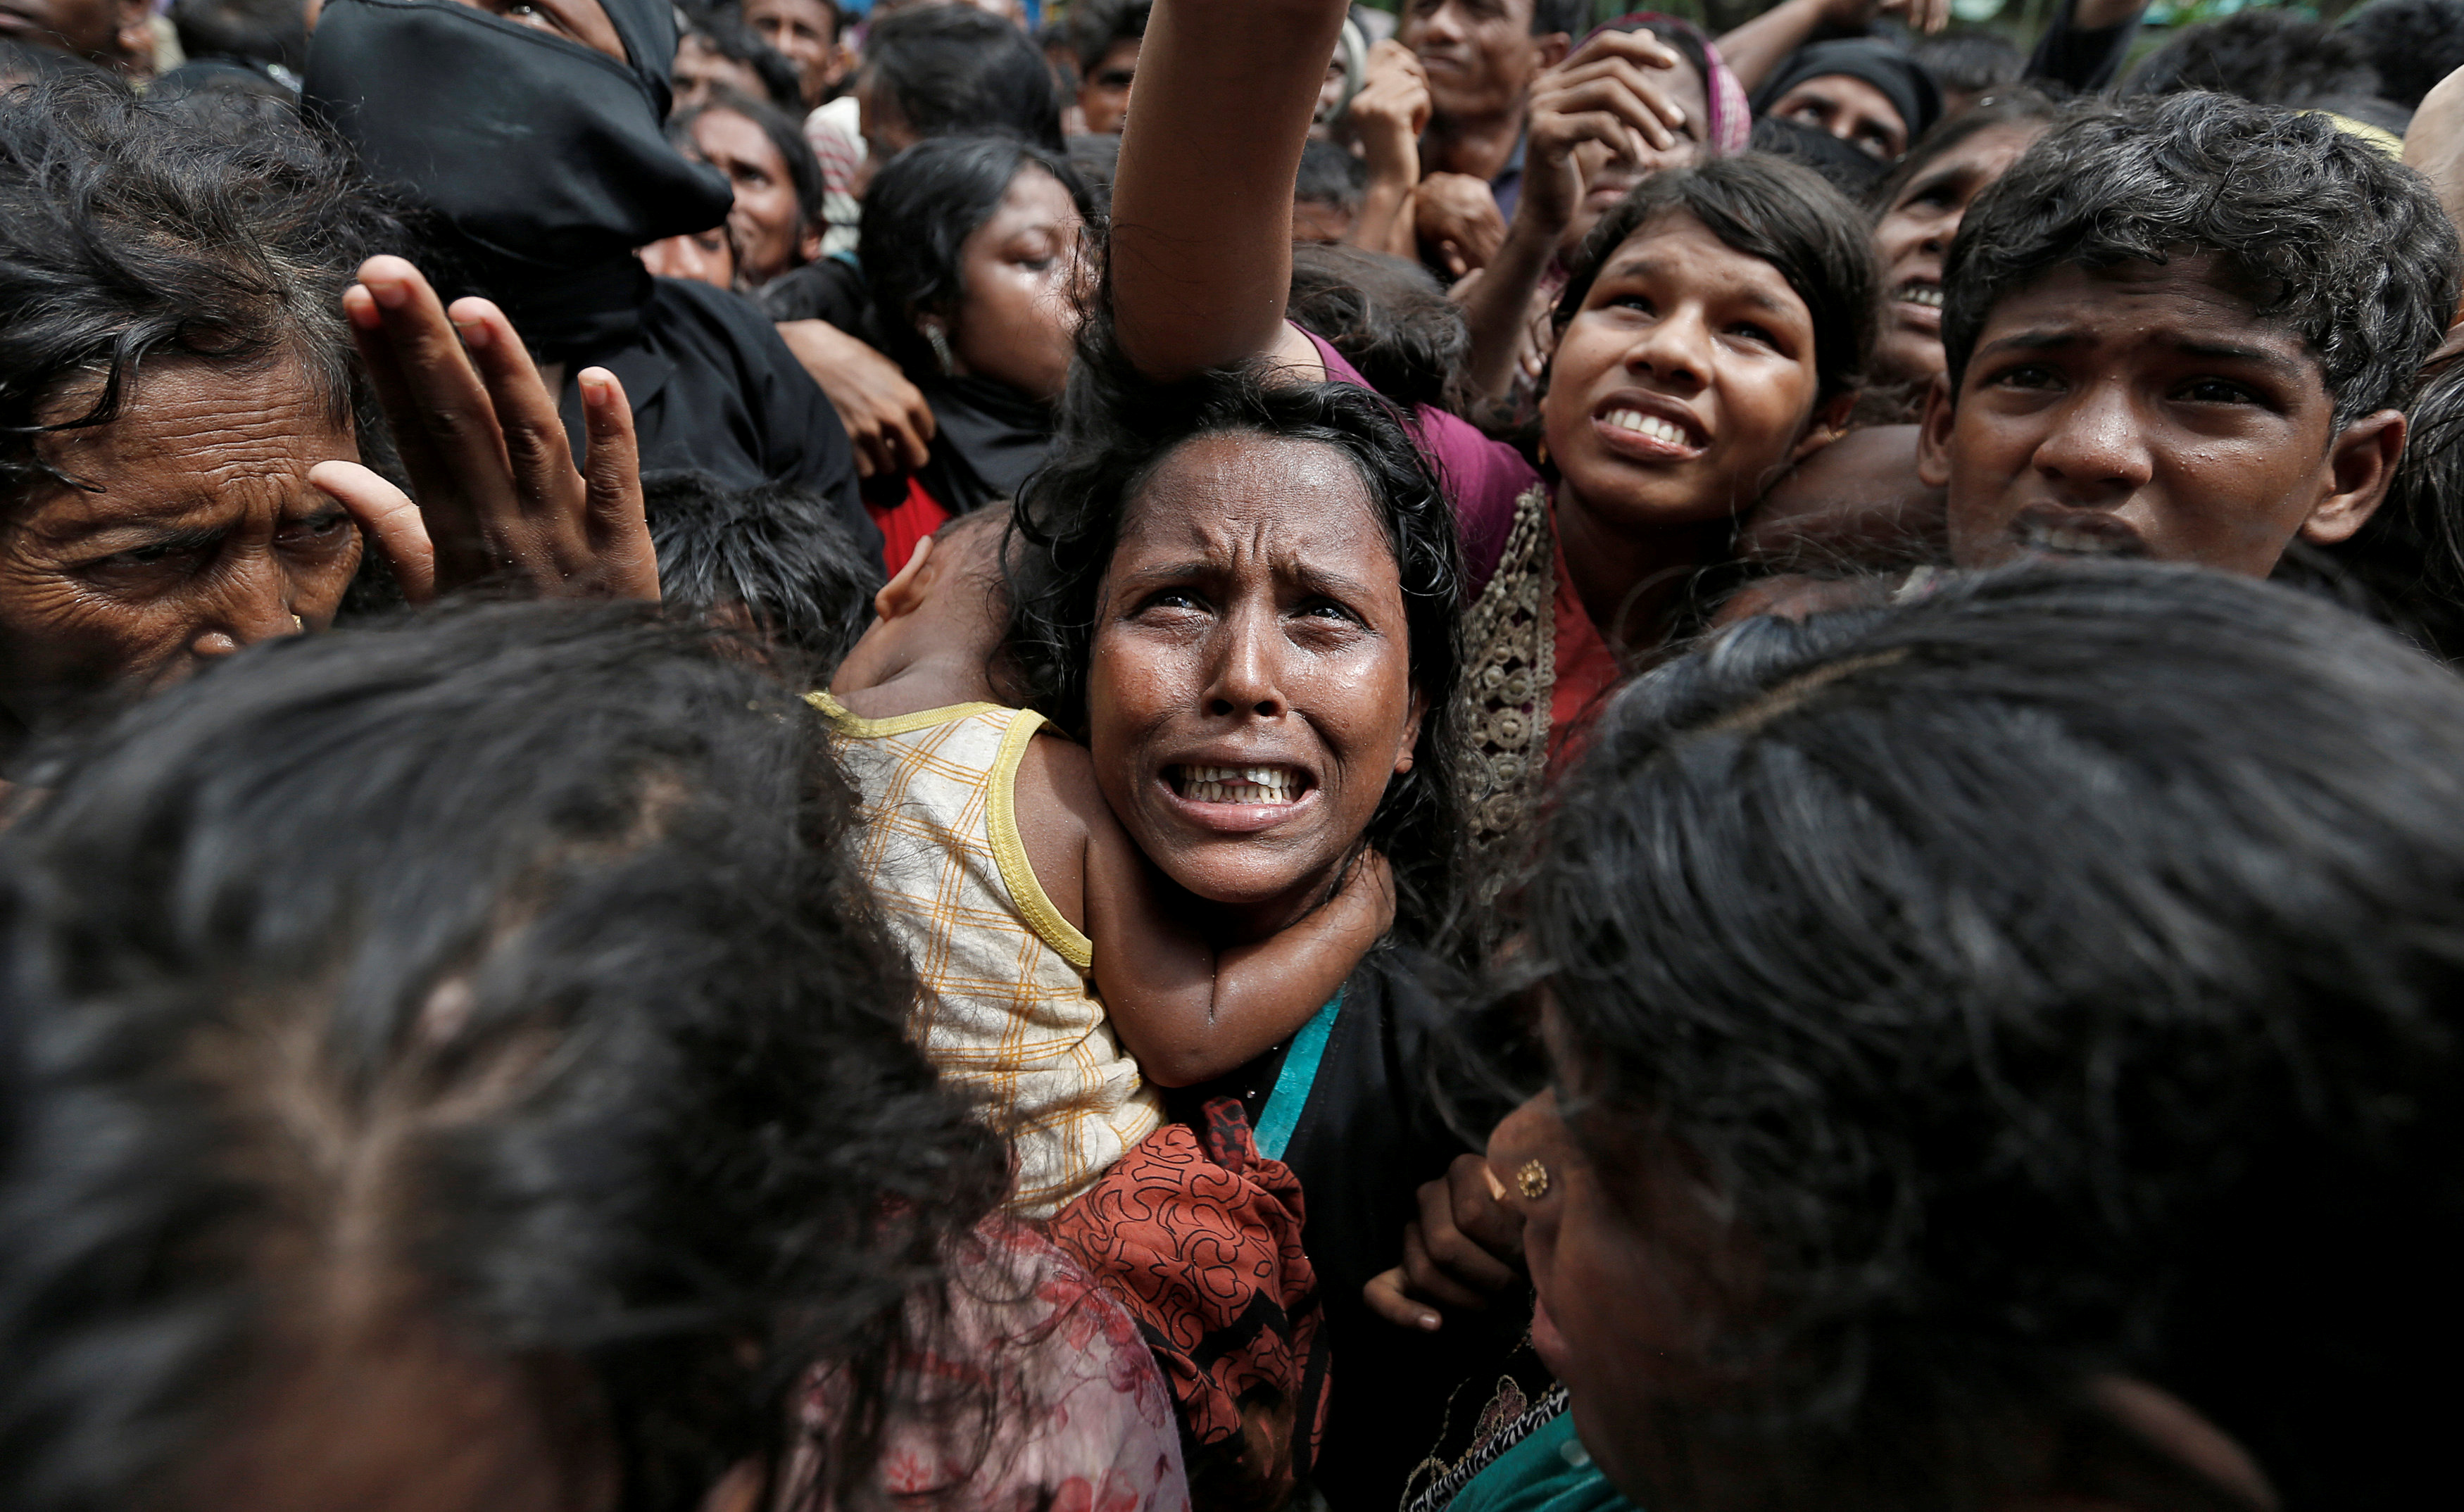 A woman reacts as Rohingya refugees wait to receive aid in Cox's Bazar, Bangladesh, September 21, 2017. REUTERS/Cathal McNaughton